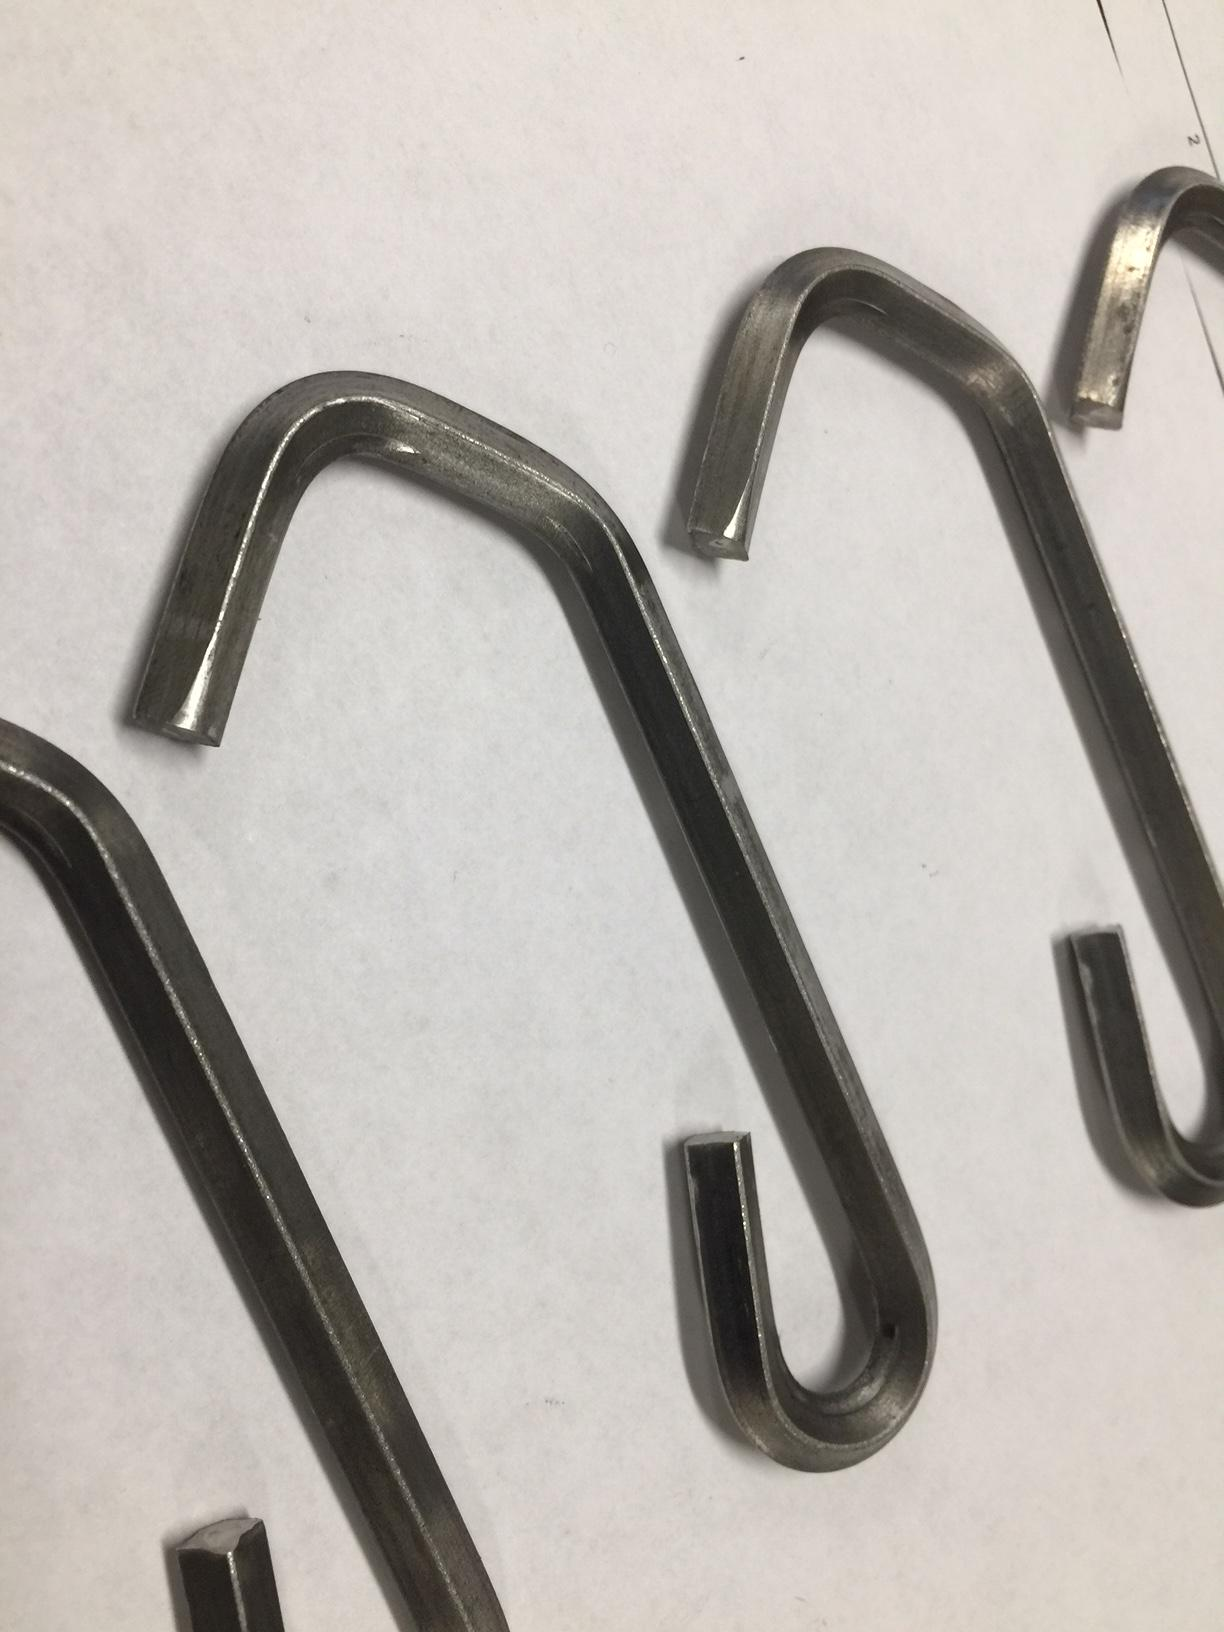 Marlin's Stainless Steel Diamond Wire Hooks Featured in WFTI